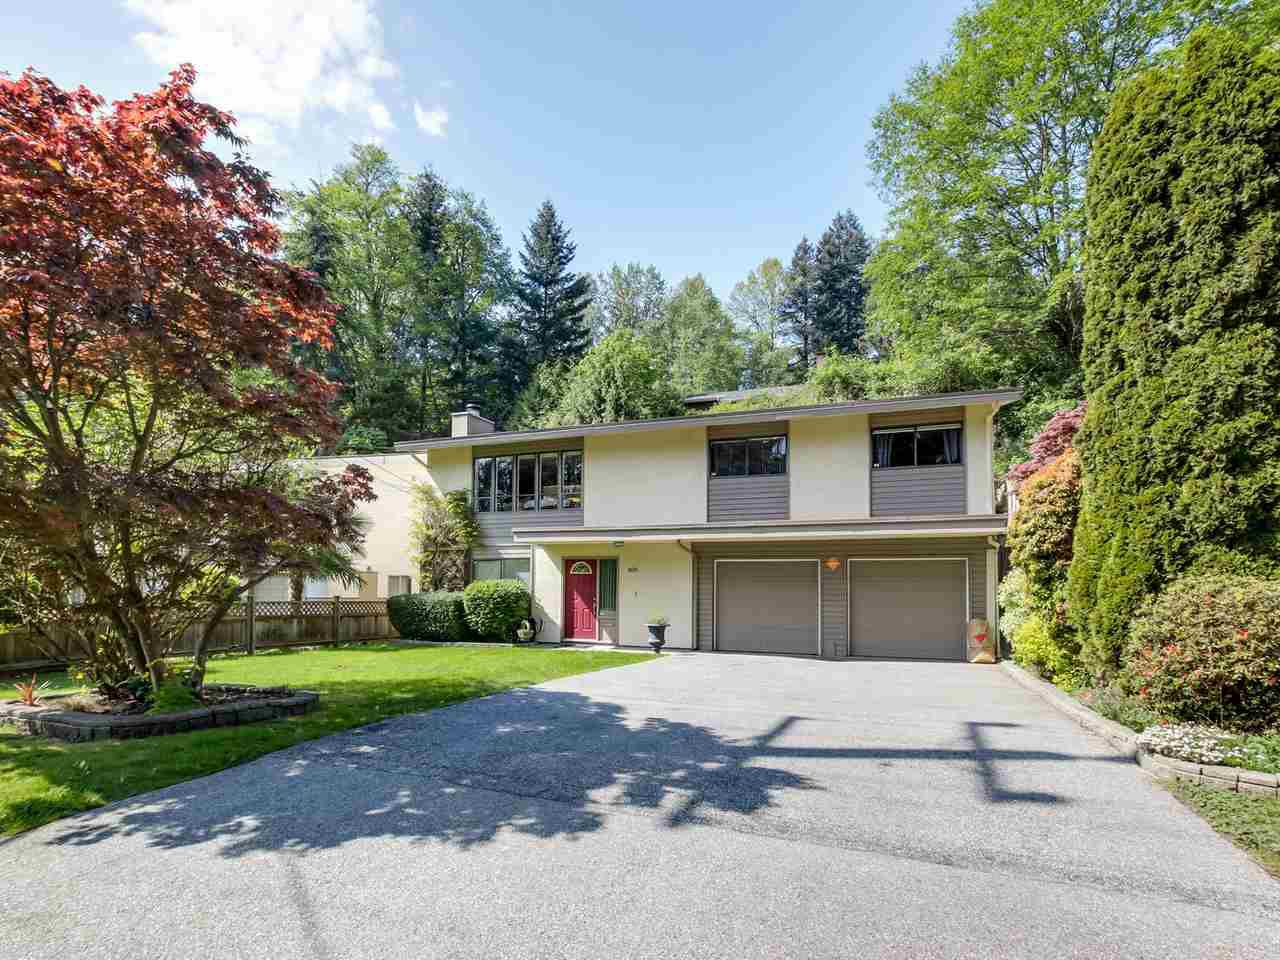 """Main Photo: 809 SEYMOUR Boulevard in North Vancouver: Seymour NV House for sale in """"Seymour"""" : MLS®# R2070083"""